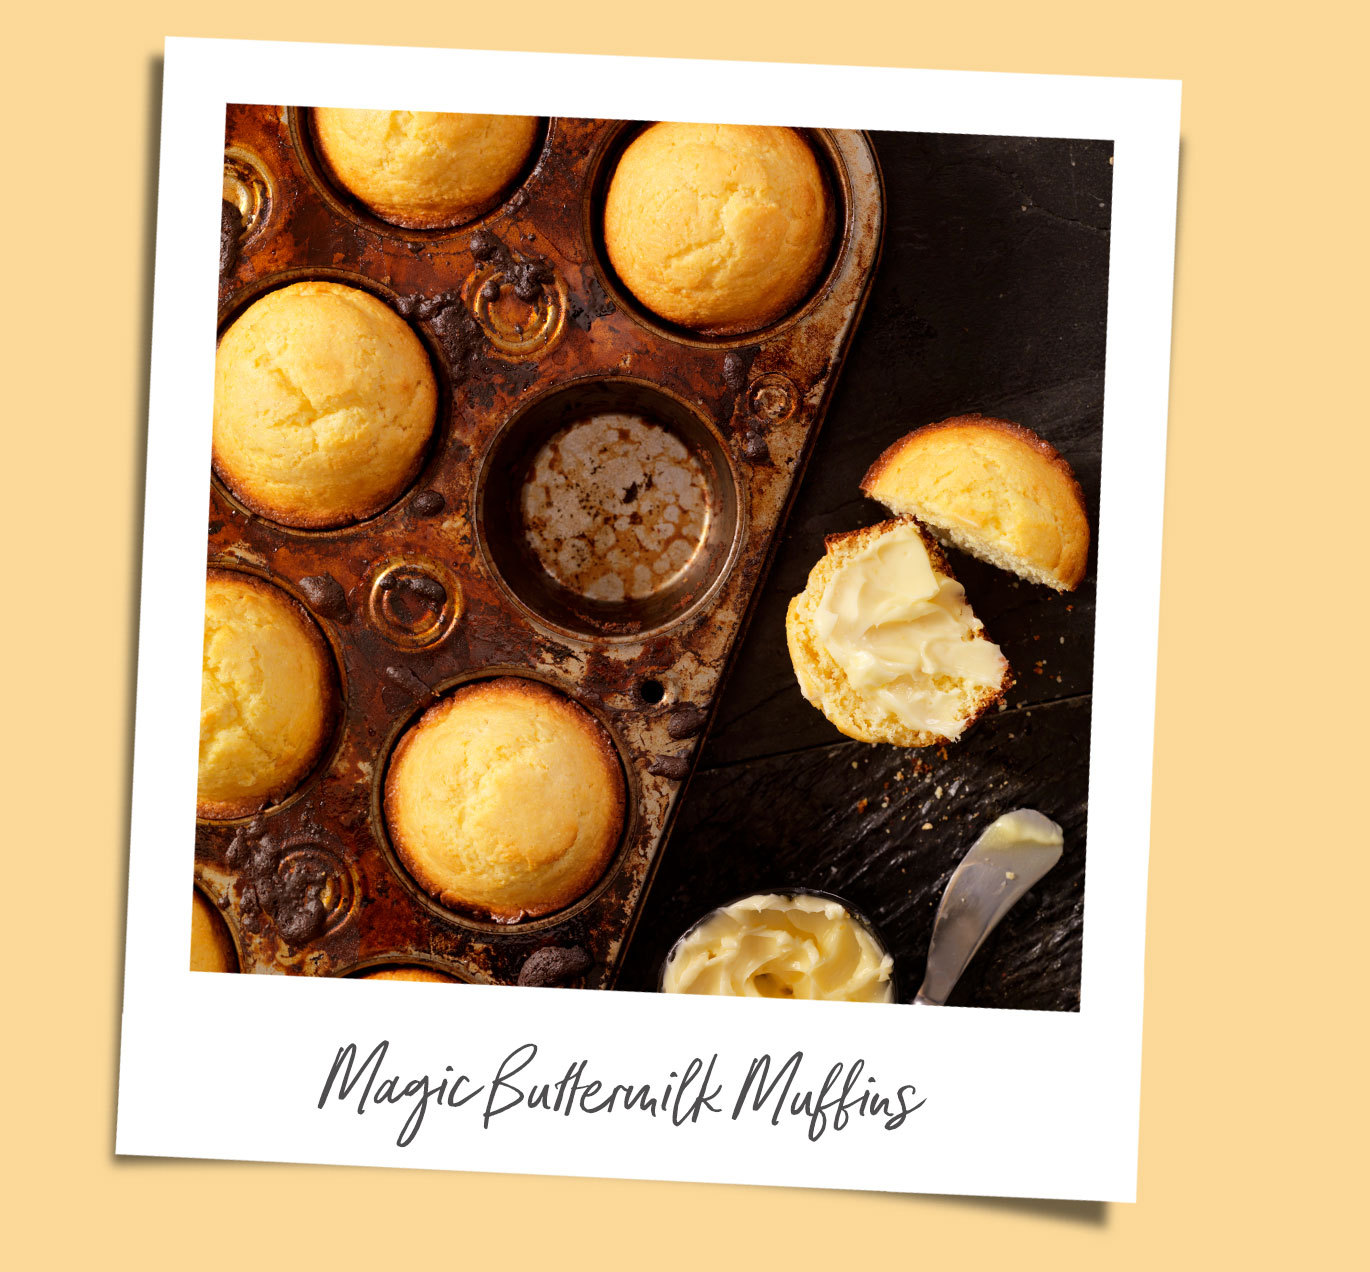 Magic Buttermilk Muffins recipe polaroid